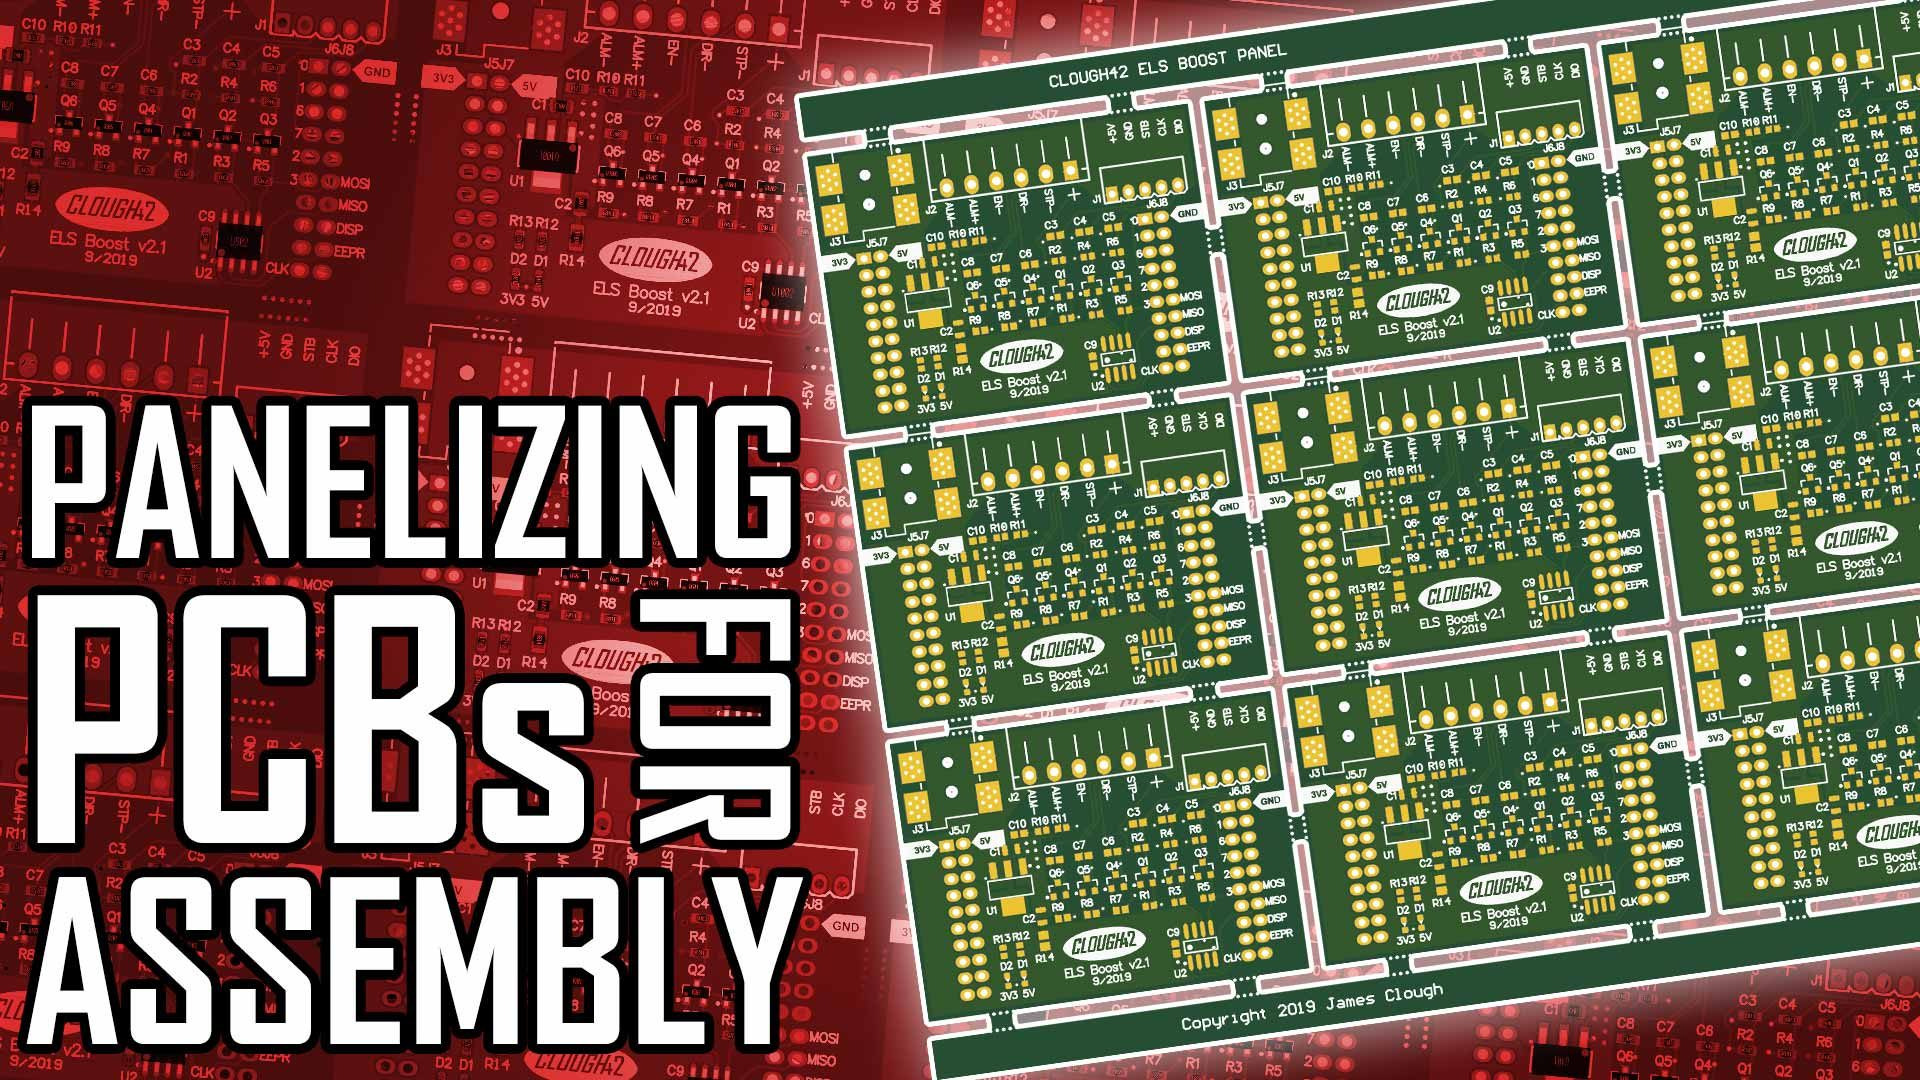 Panelizing PC Boards for Assembly with Free Software